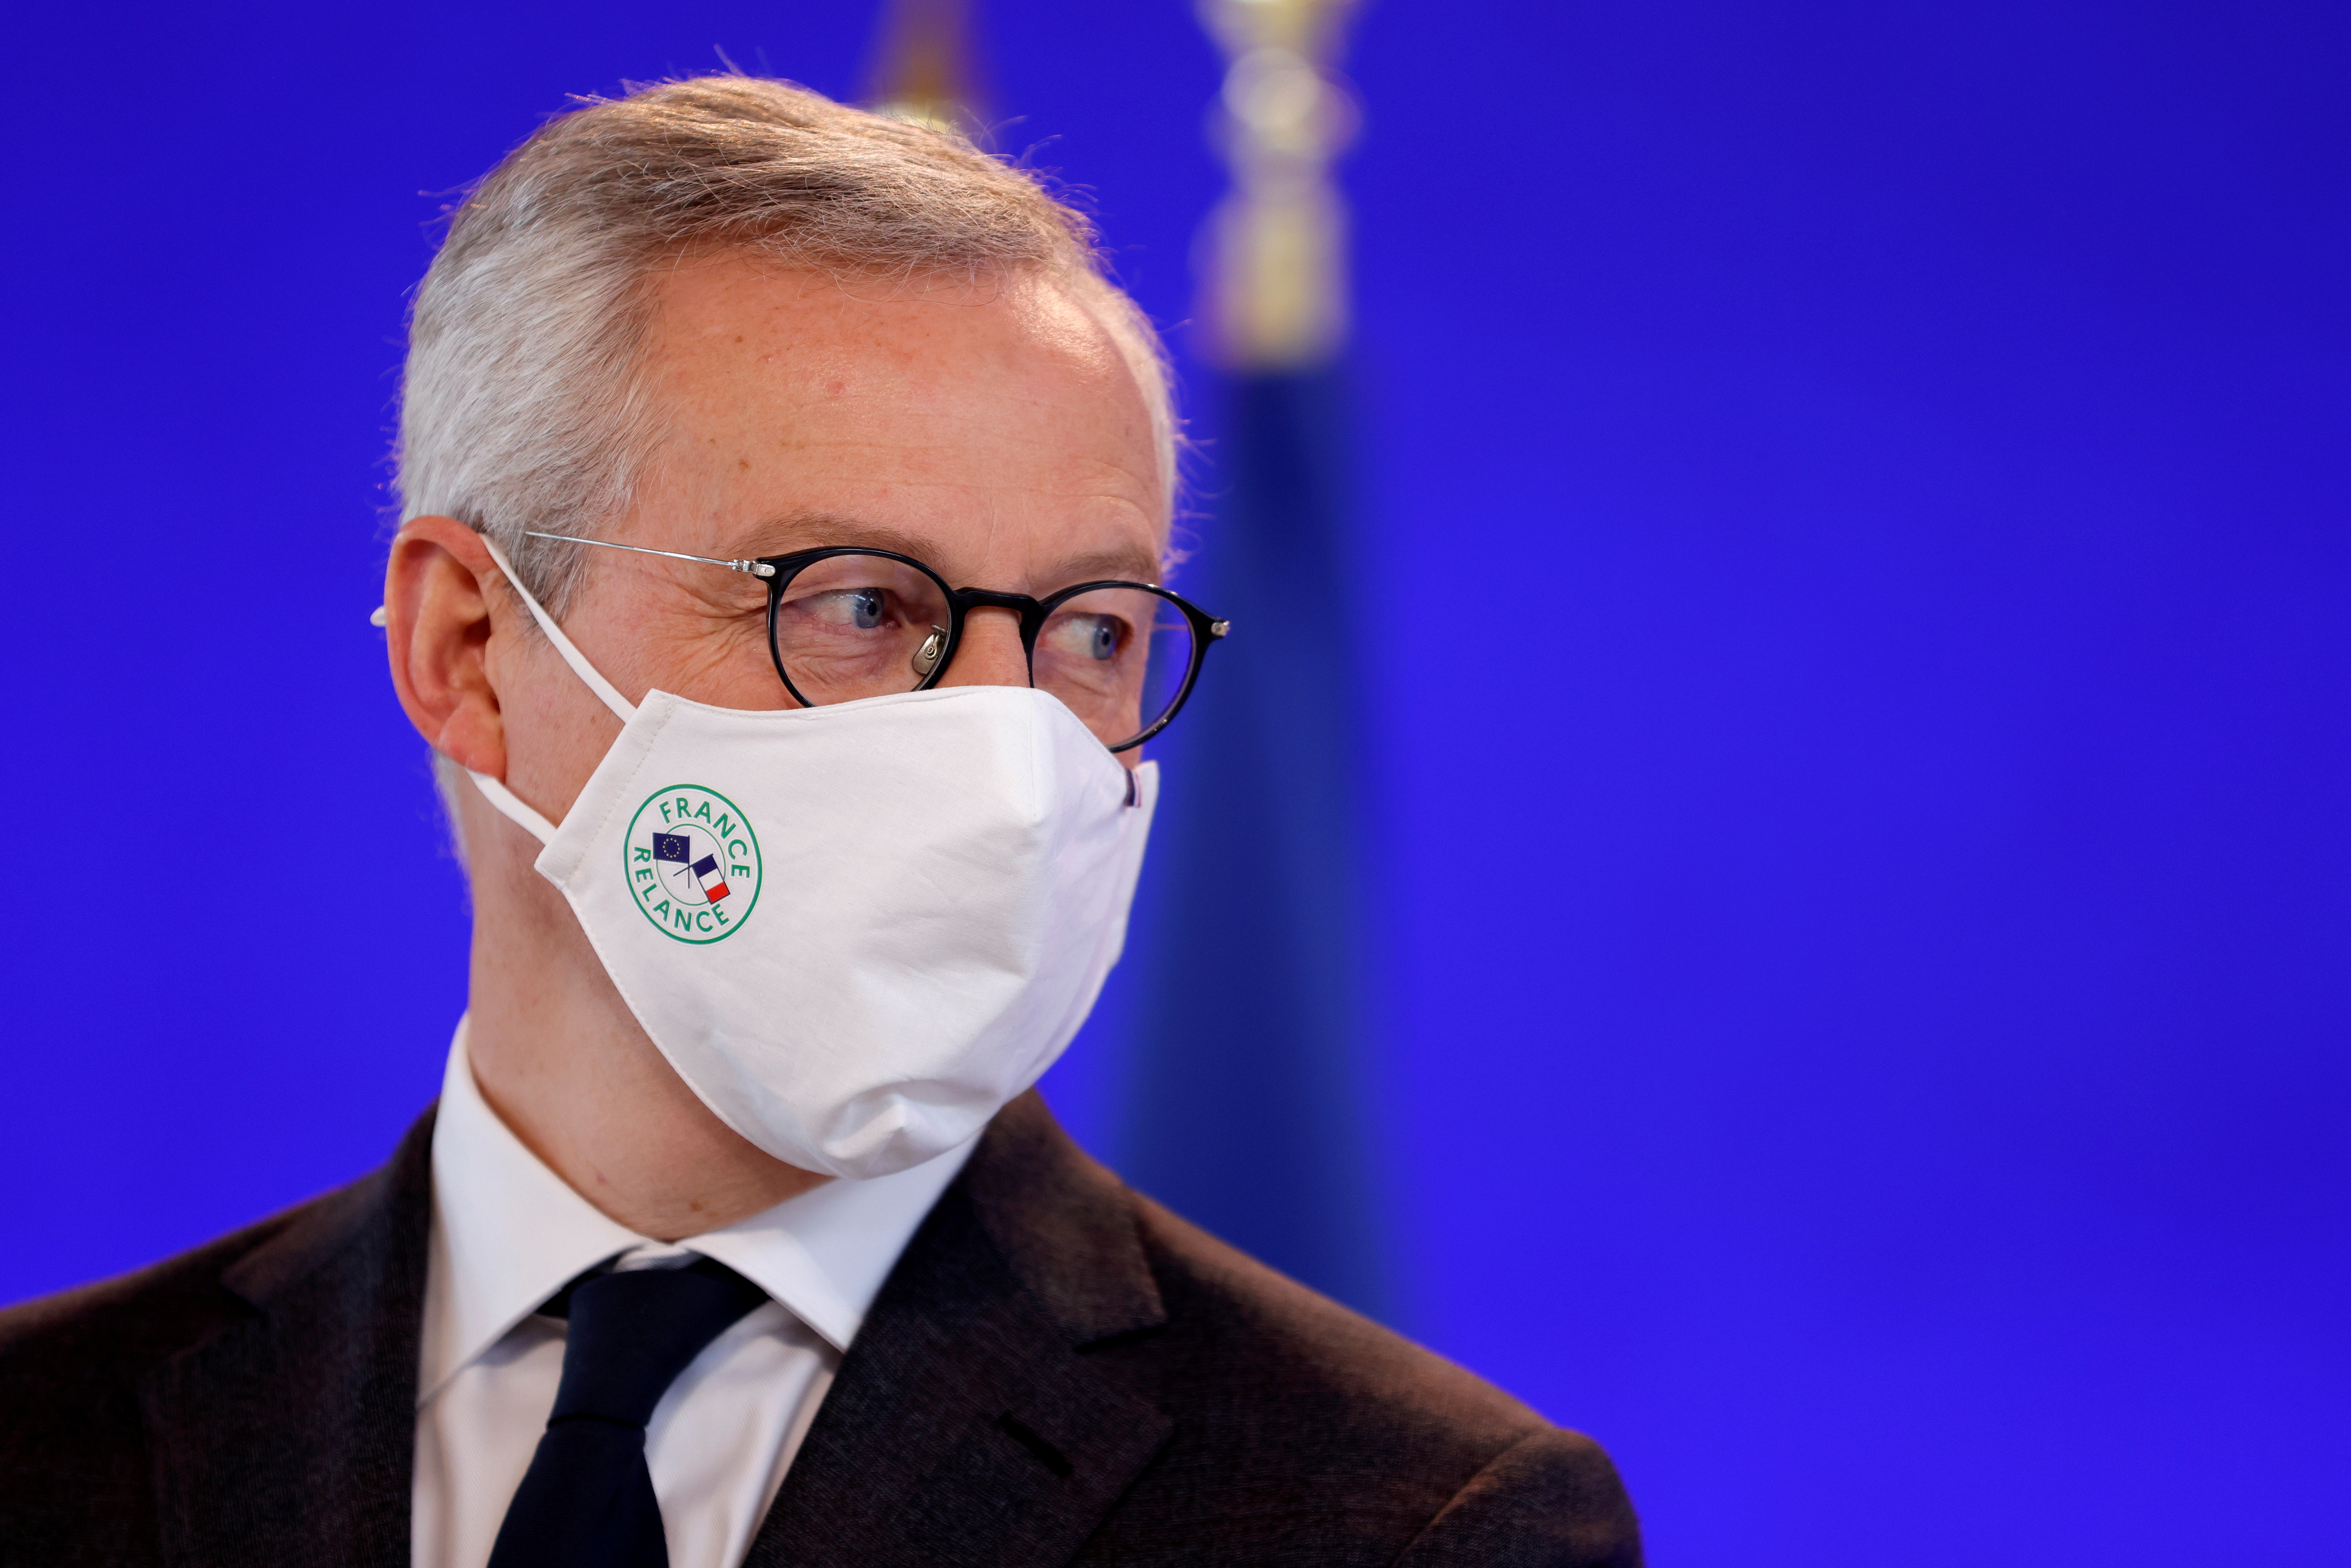 French Economy and Finance Minister Bruno Le Maire, wearing a protective face mask, attends a video conference at the Bercy Finance Ministry in Paris, France, February 15, 2021. REUTERS/Sarah Meyssonnier/File Photo